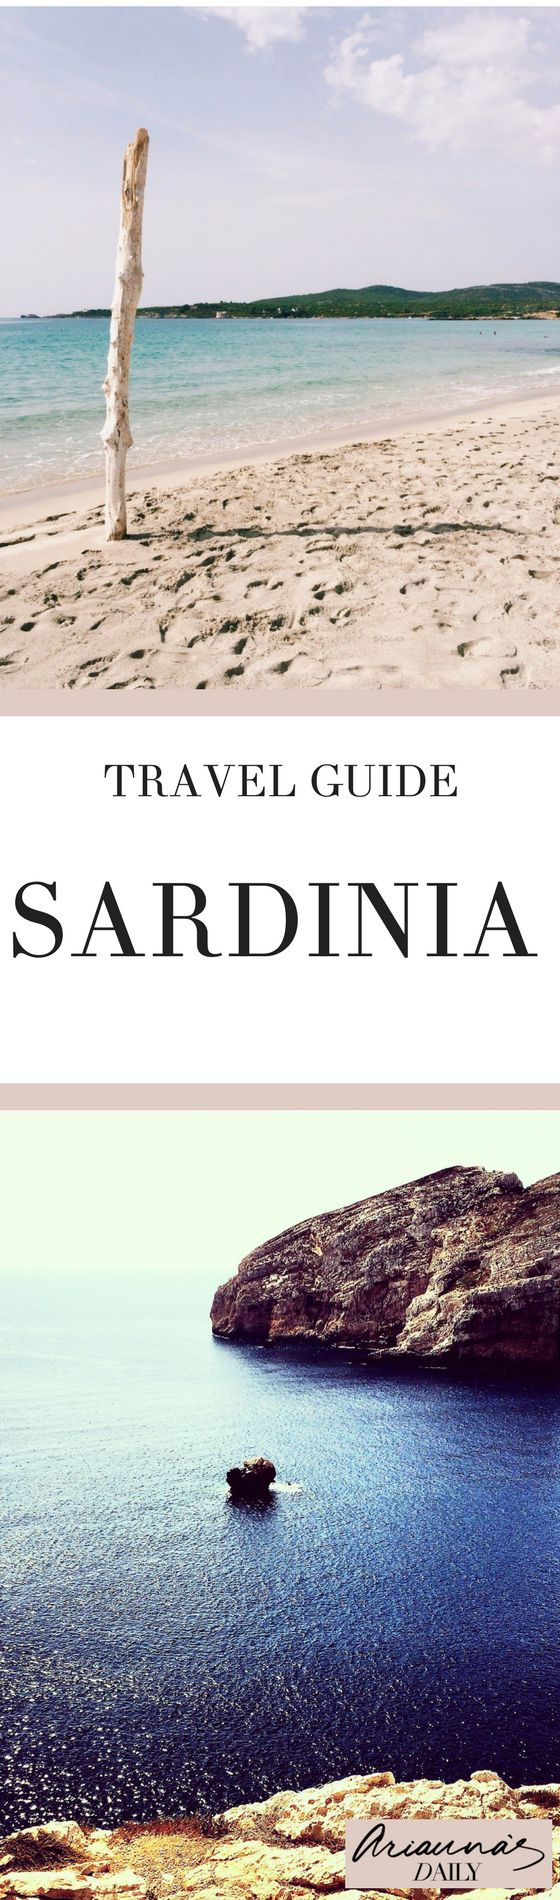 A short little travel guide of a weekend in Sardinia including some beautiful photos of some stunning locations, from Bosa, Stintino, Castelsardo, Capo Caccia, Is Aruttas and Oristano. Such a rural, unspoilt place, research your next holiday in this idyllic spot #ariannasdaily #travelblogger #sardinia